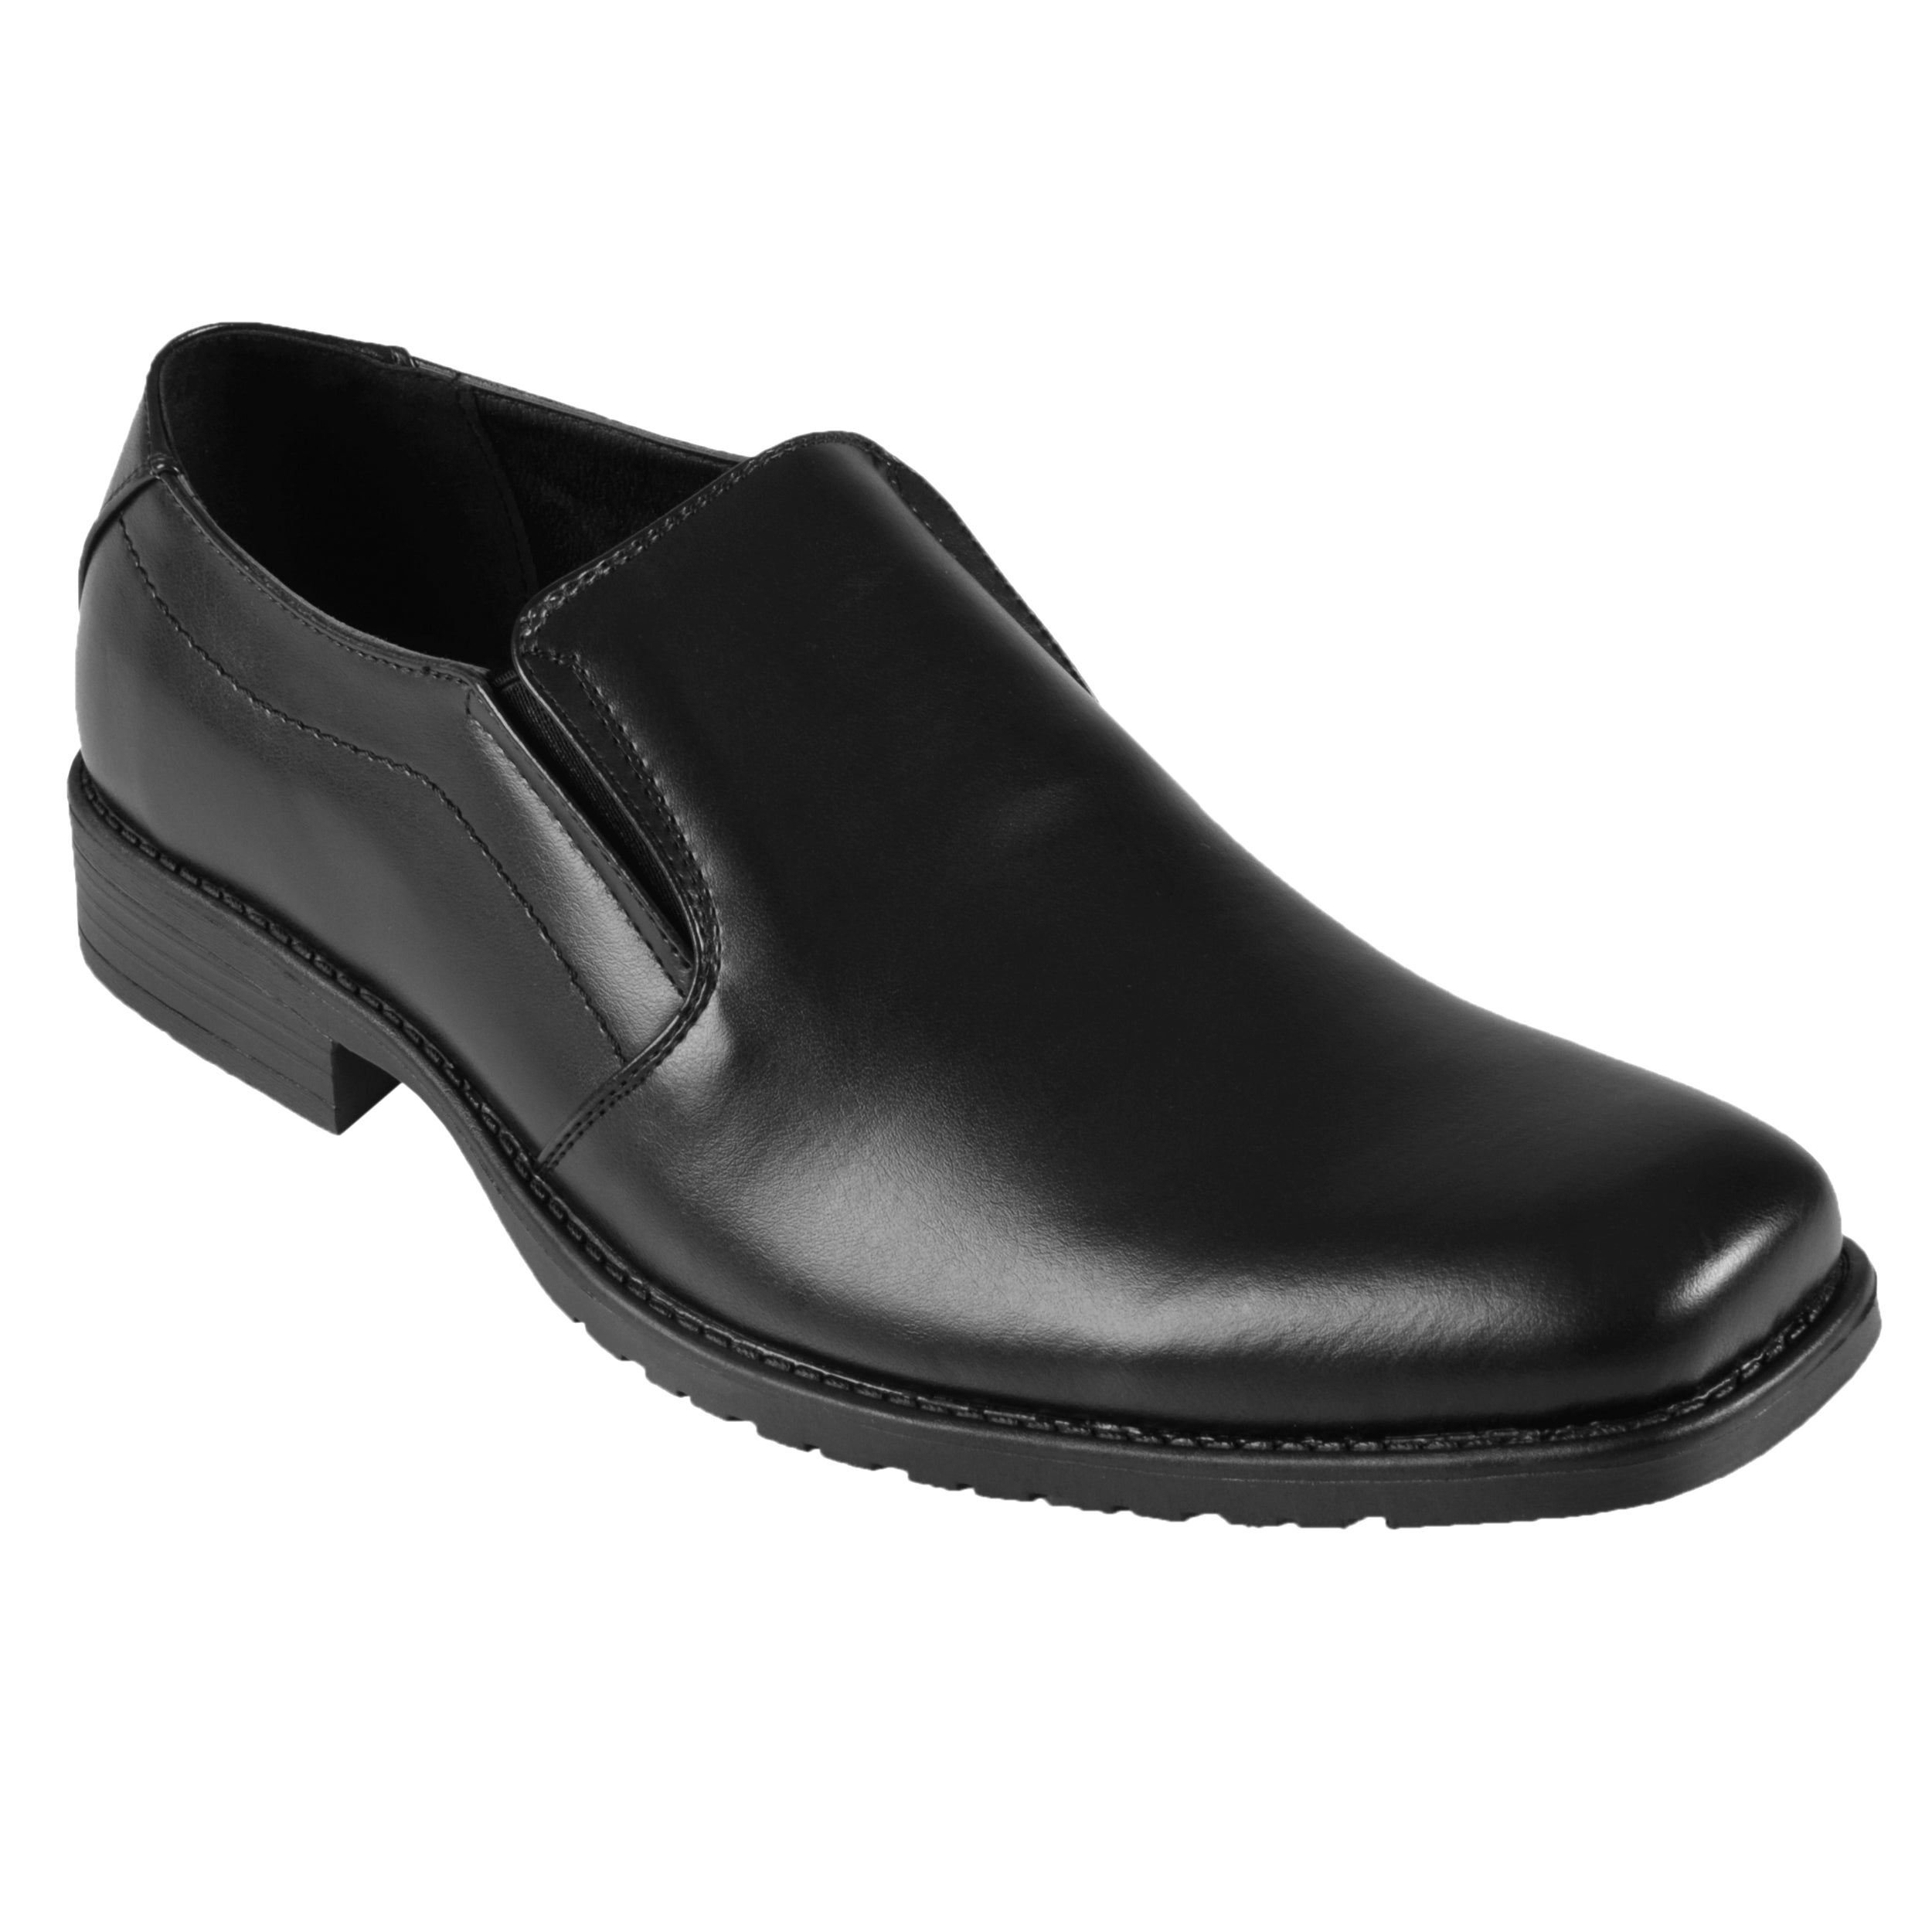 Oxford & Finch Men's Topstitched Leather Slip-on Loafers